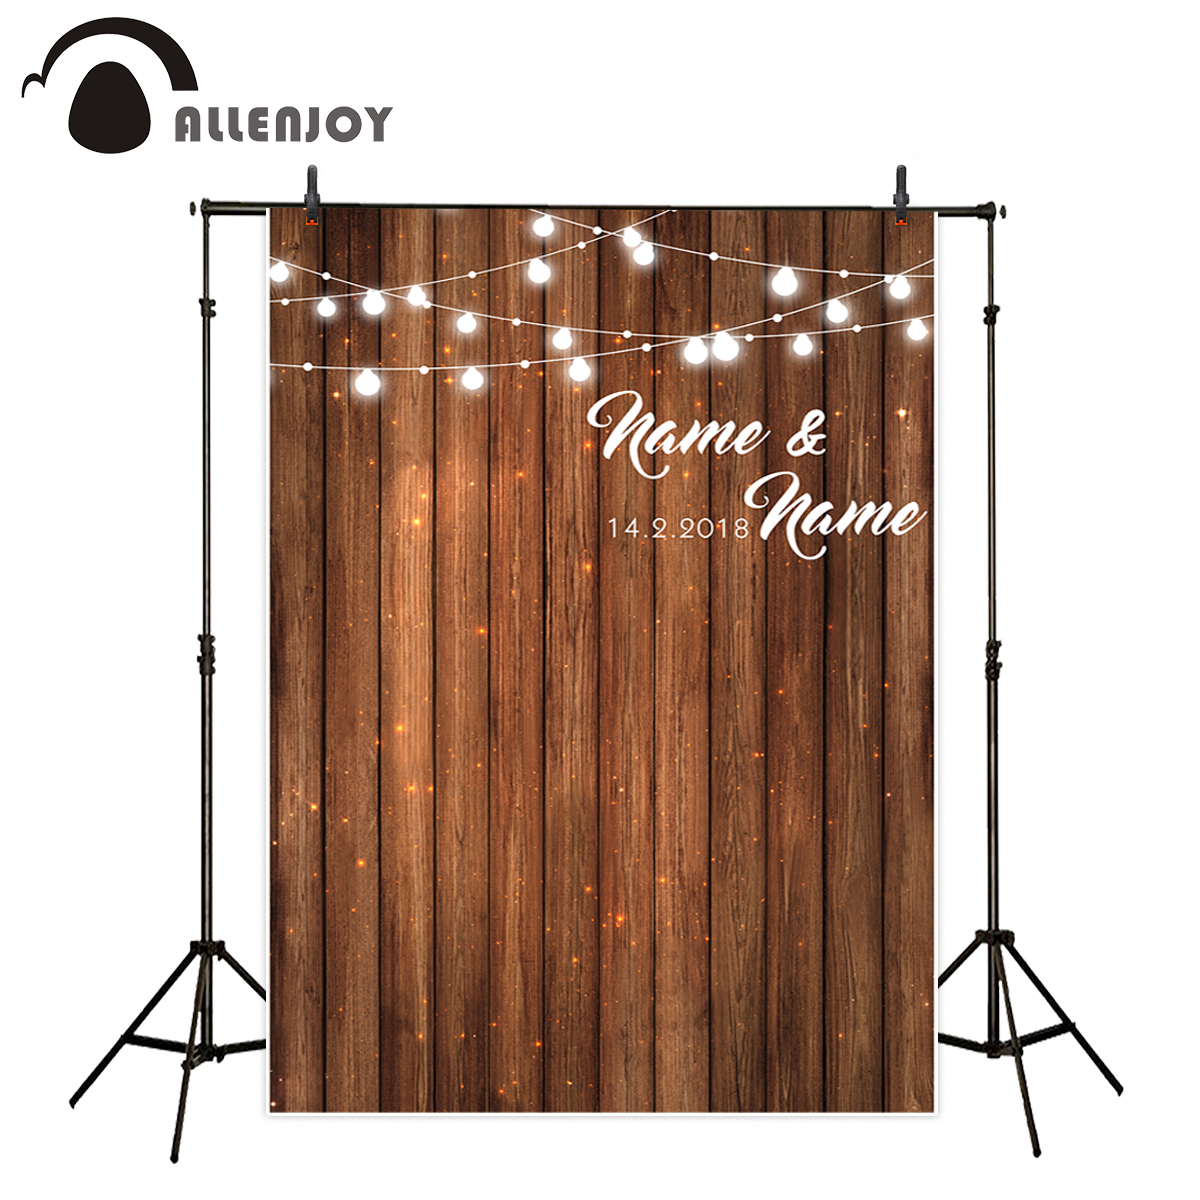 Allenjoy wedding backgrounds for photography studio wood board party customize original design backdrop professional photocall freeshipping tecsun pl 600 full band fm mw sw ssb pll synthesized stereo portable digital radio receiver pl600